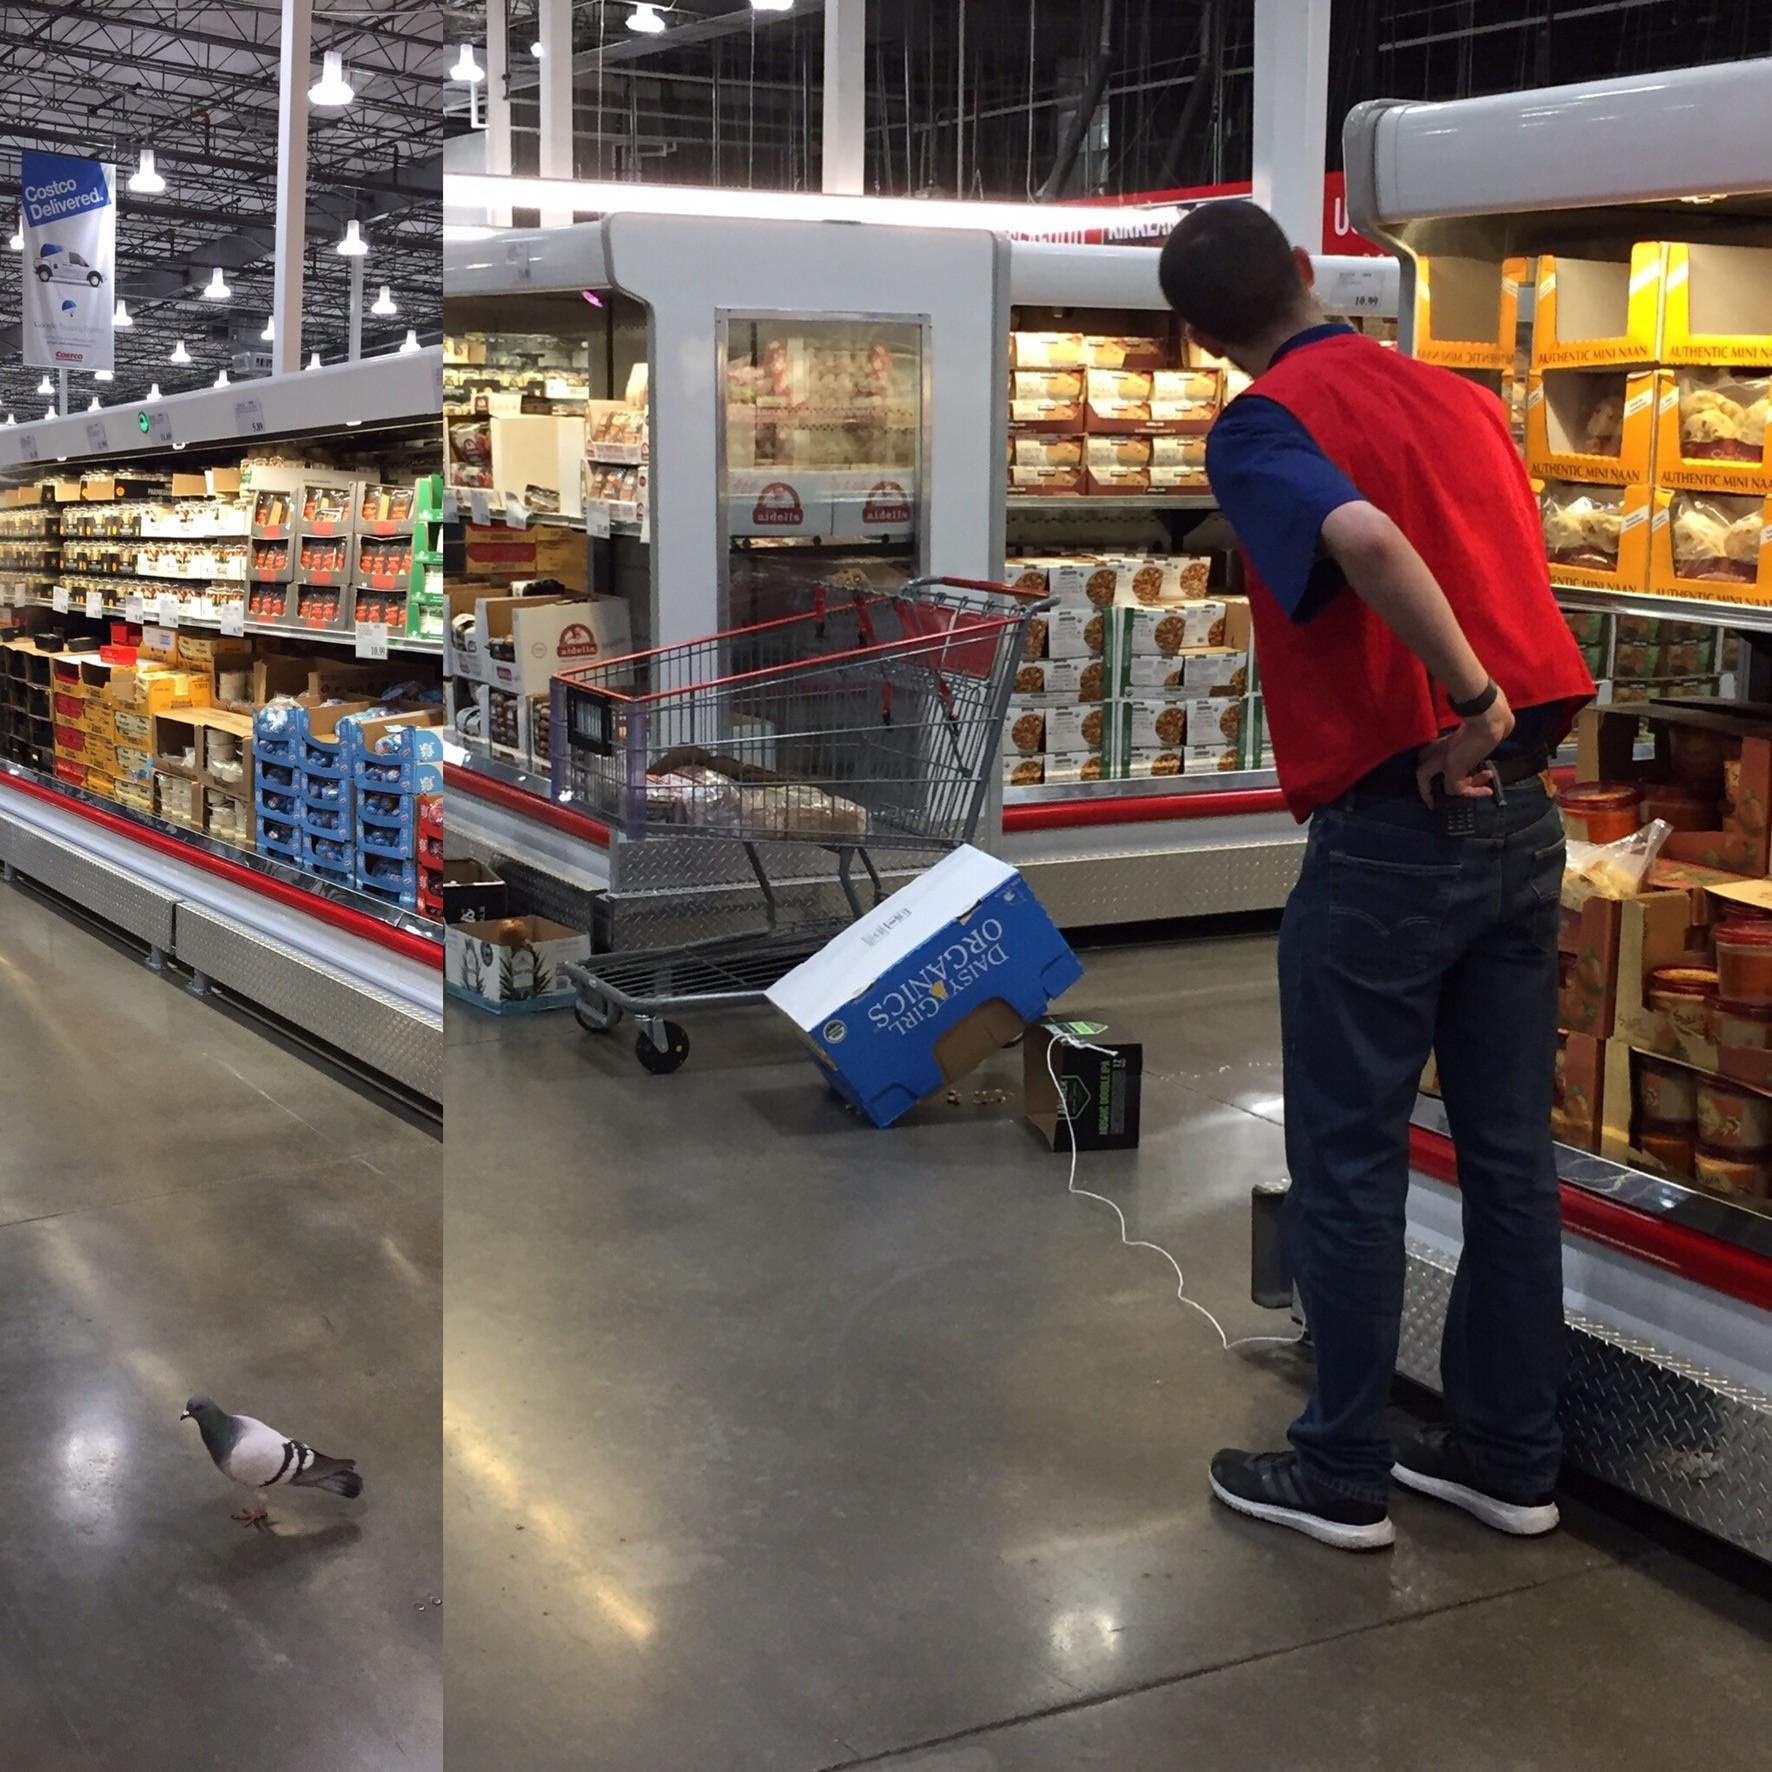 A store employee hunting a pigeon